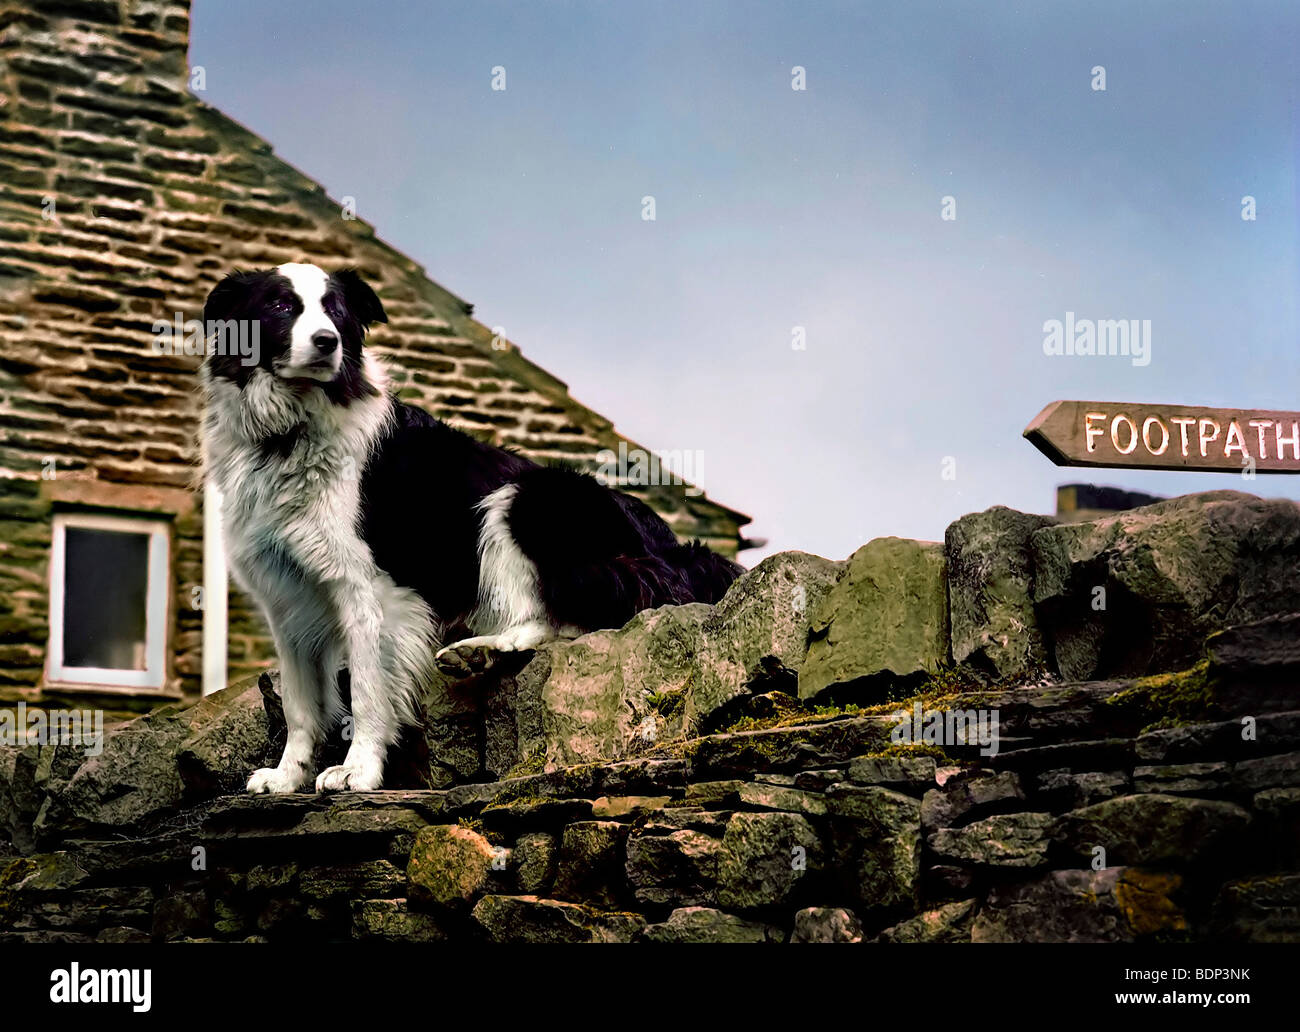 A black and white sheepdog sitting on a stone wall in England - Stock Image